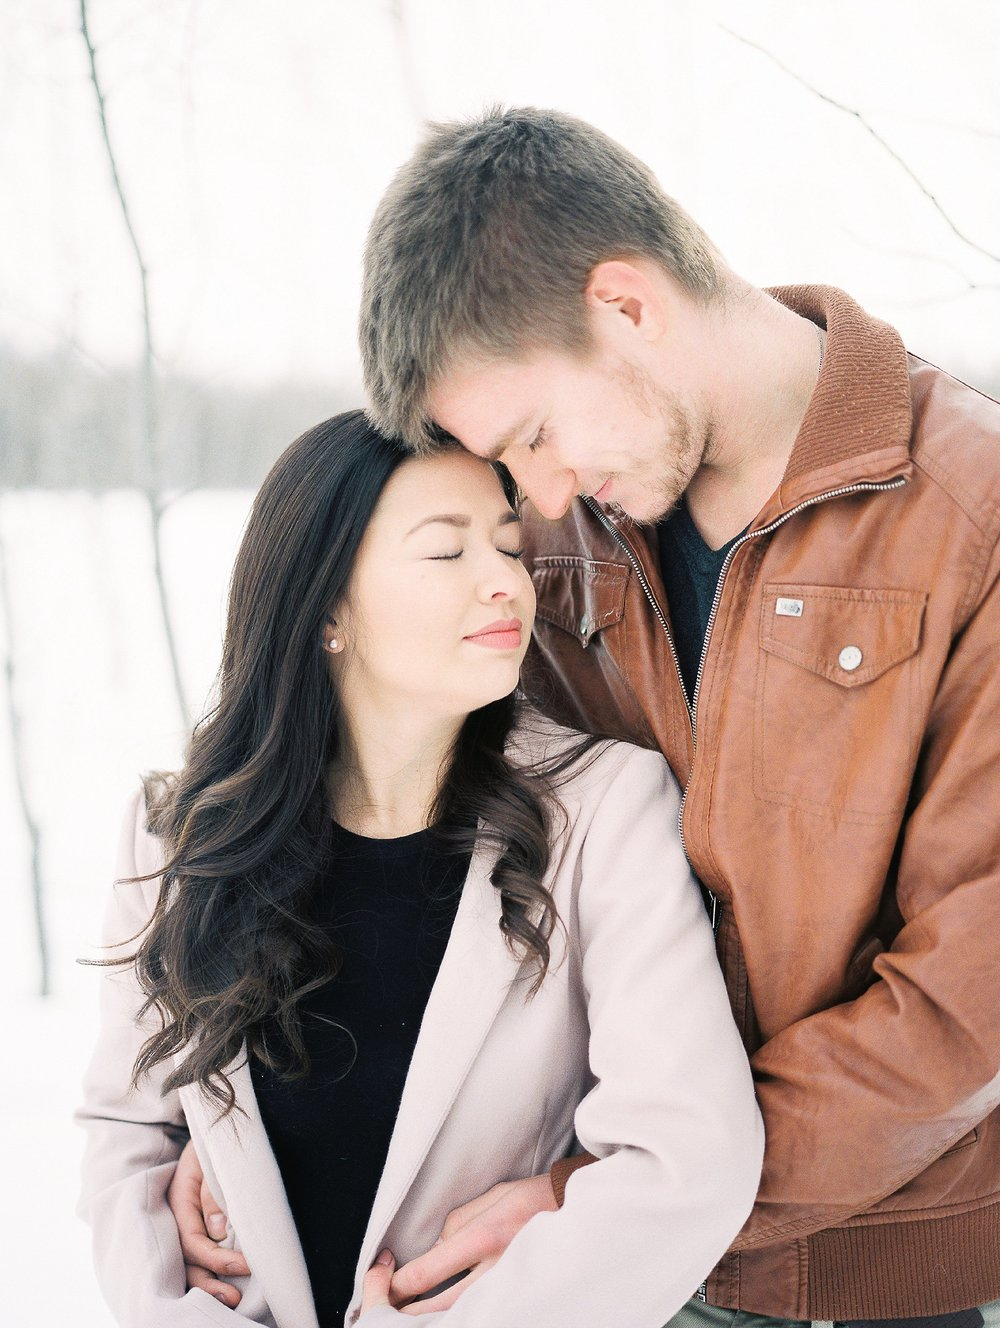 Light and airy film photographer - Winter couples photoshoot - Keila Marie Photography